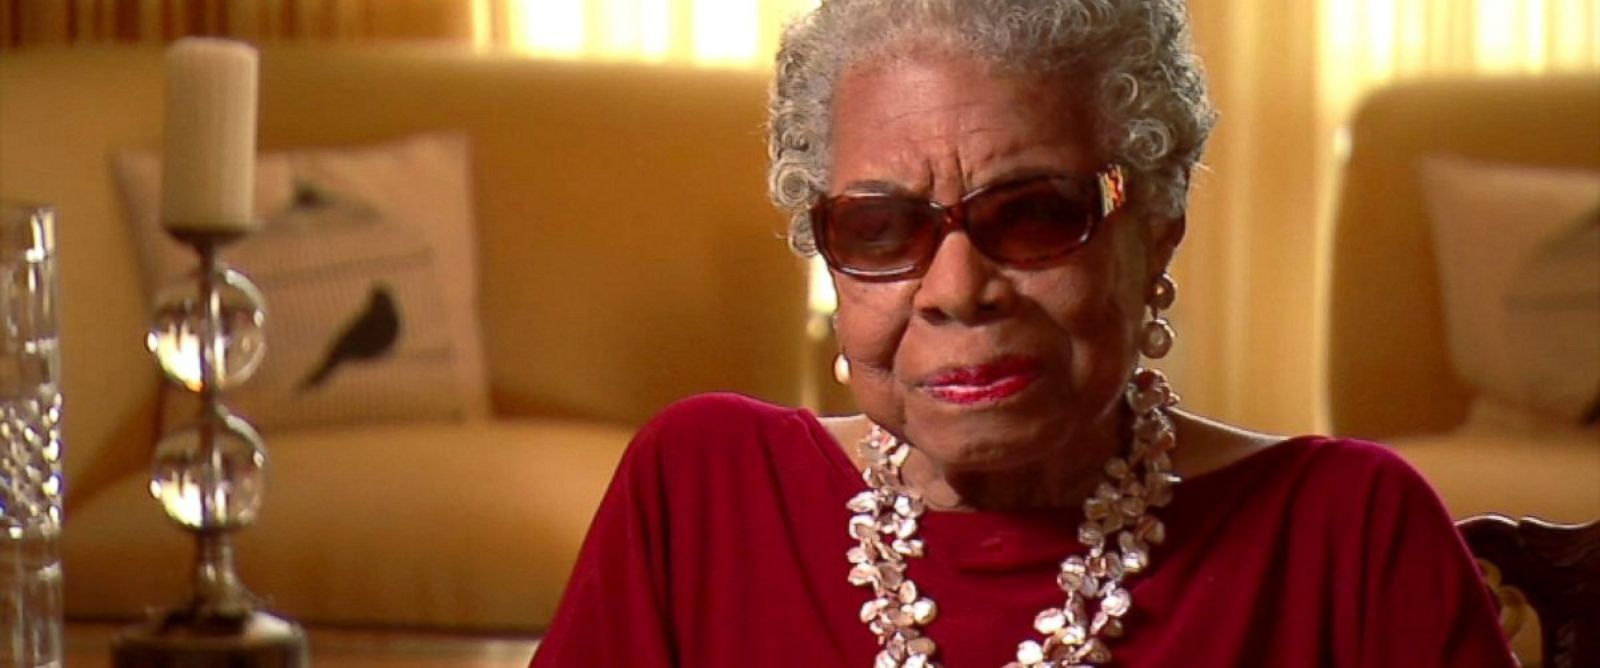 PHOTO: Maya Angelous final recorded speech was captured May 22, 2014 at her home in North Carolina. The video statement was recorded in advance of Major League Baseballs Civil Rights Luncheon.